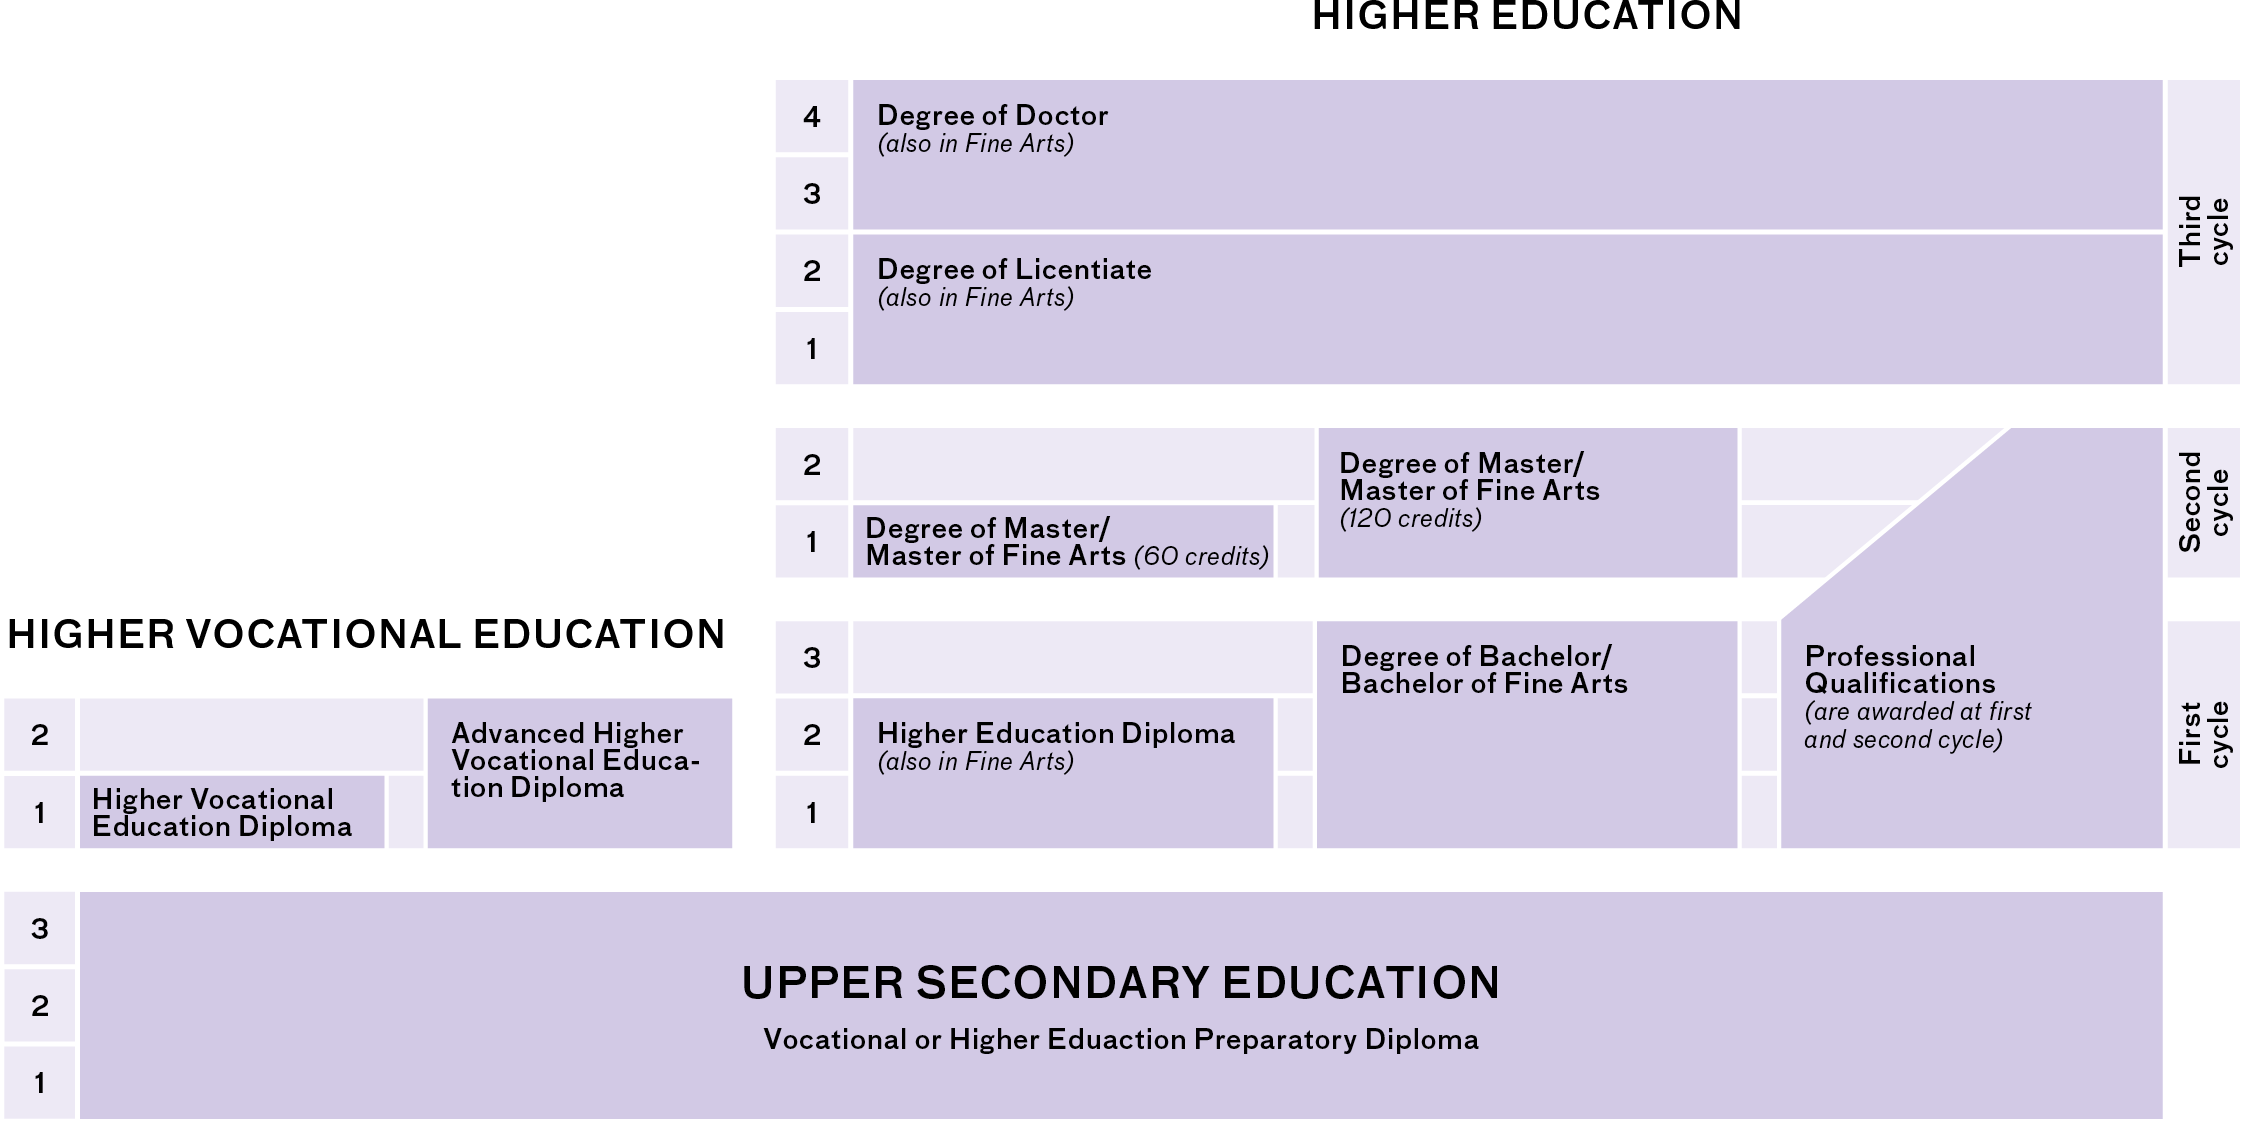 Image describing the Swedish higher education system. The web page contains the information in text.